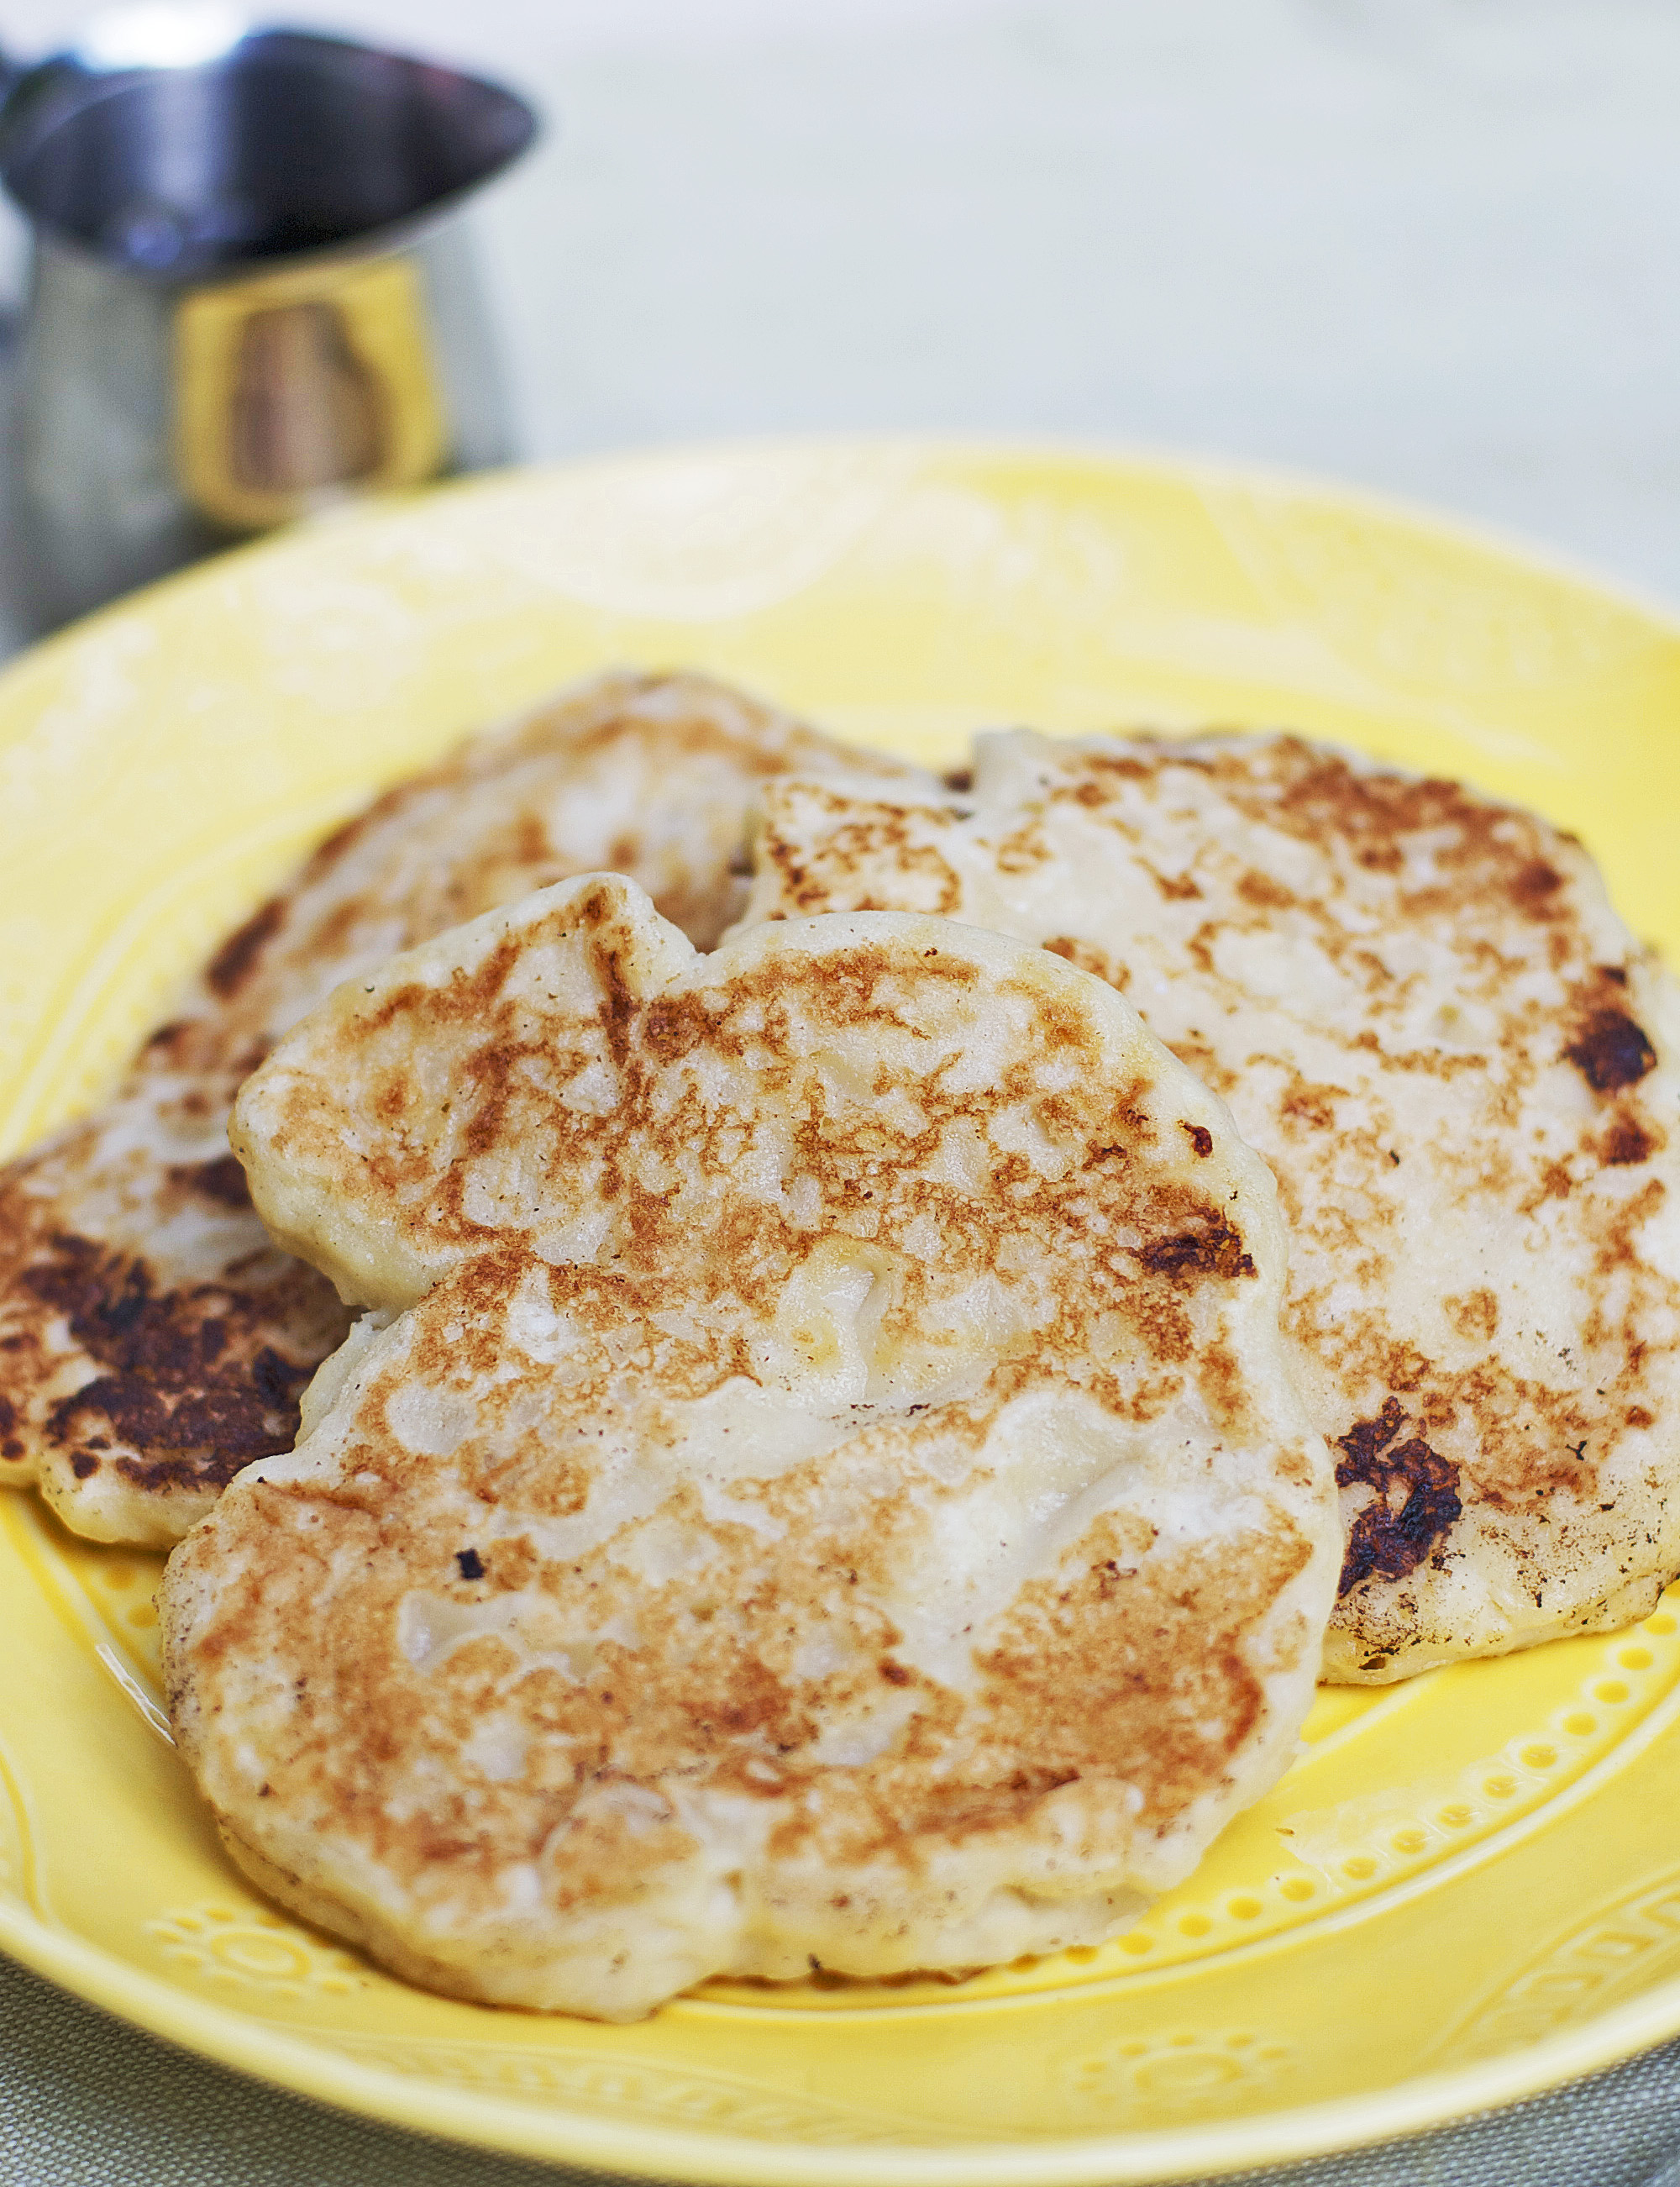 Cream Cheese Pancakes Gluten Free Dairy Free | Let's Be Yummy